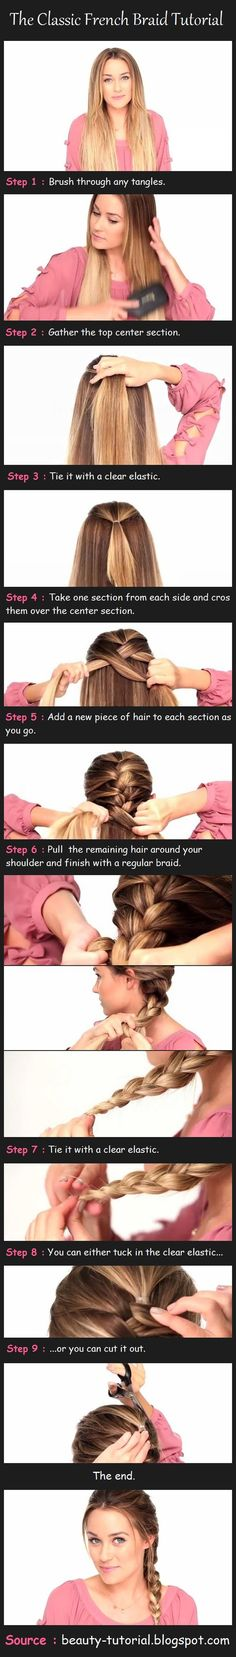 The Classic French Braid Tutorial, a smart way